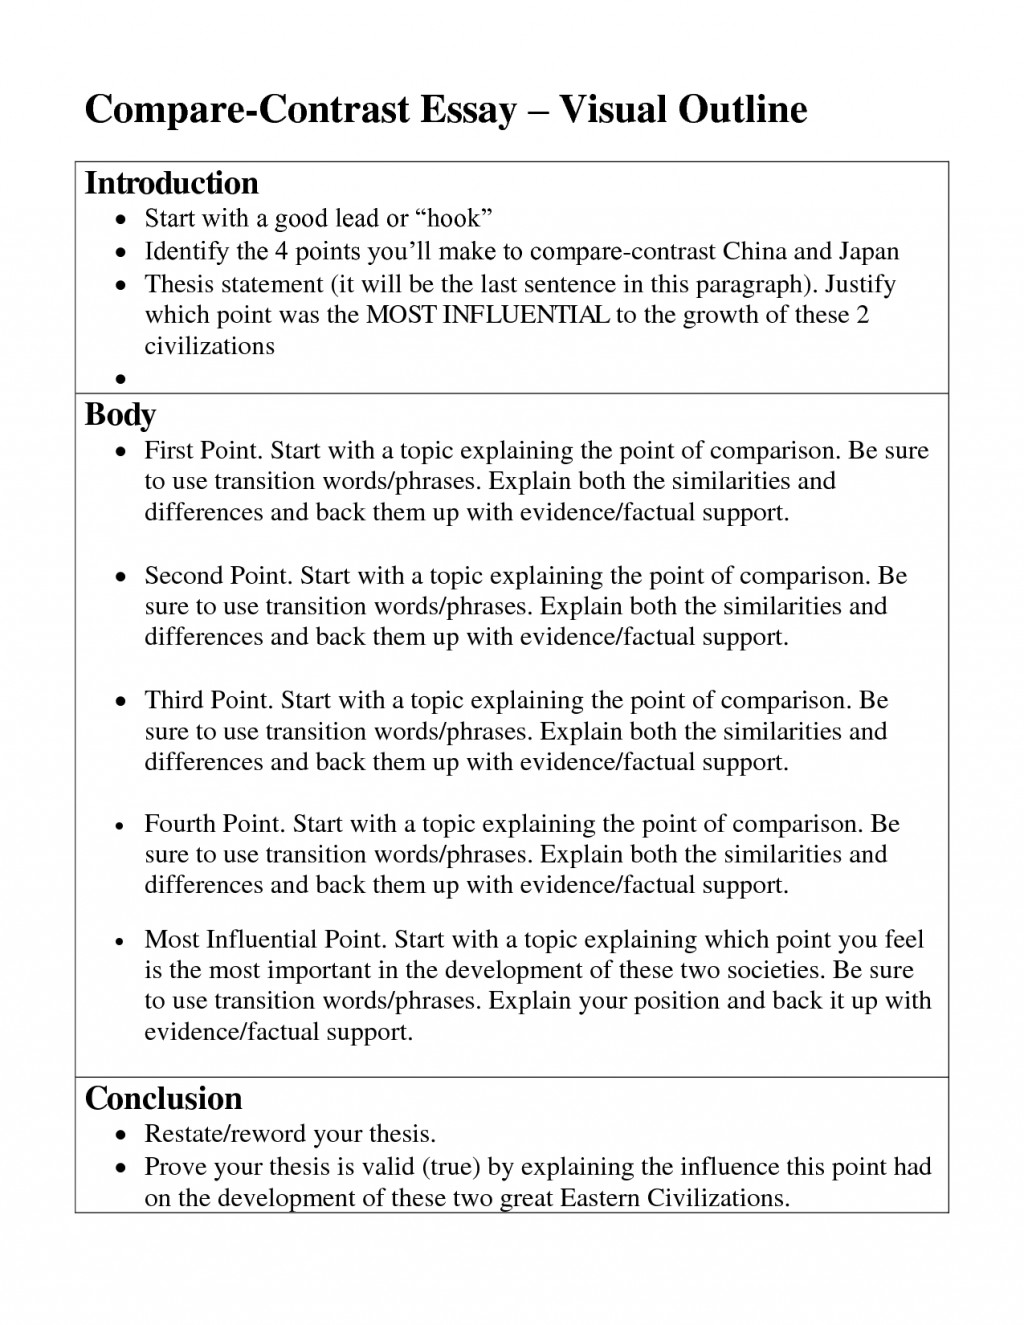 004 Comparison And Contrast Essay Outline Impressive Compare Format Middle School Worksheet Pdf Examples Large